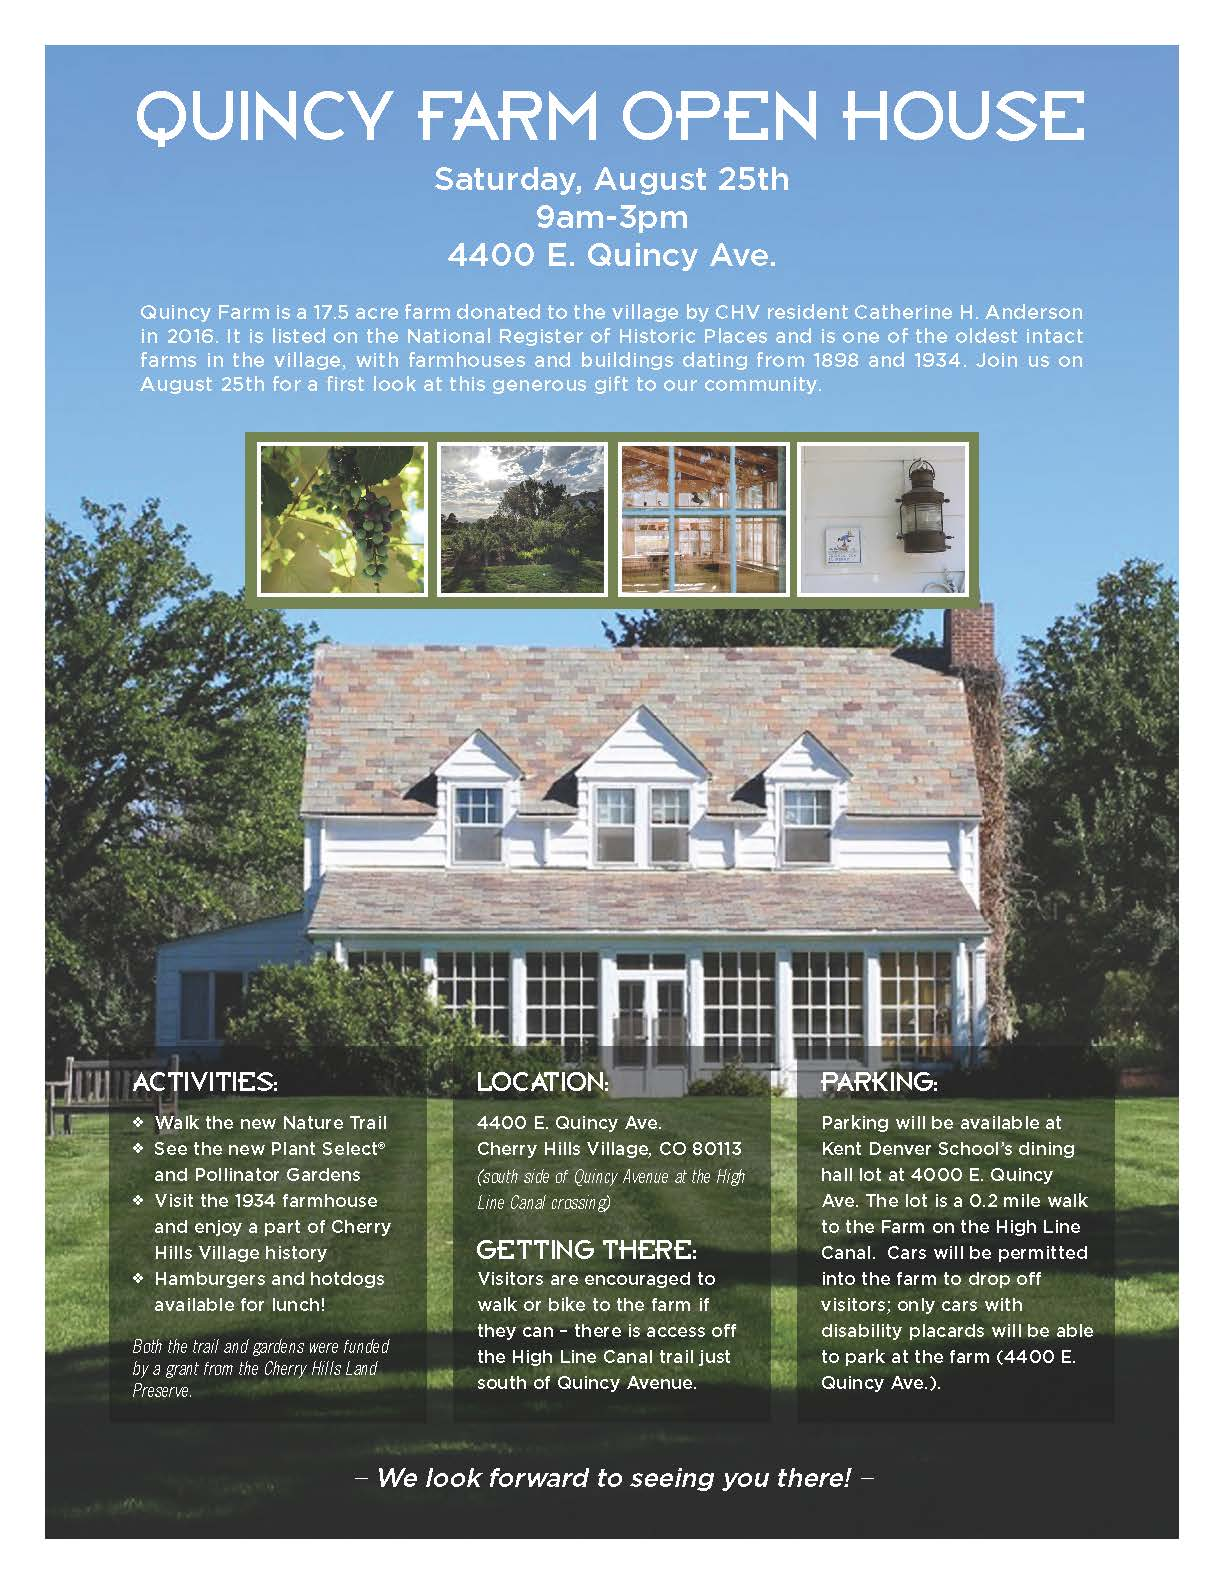 Quincy Farm Open House flyer